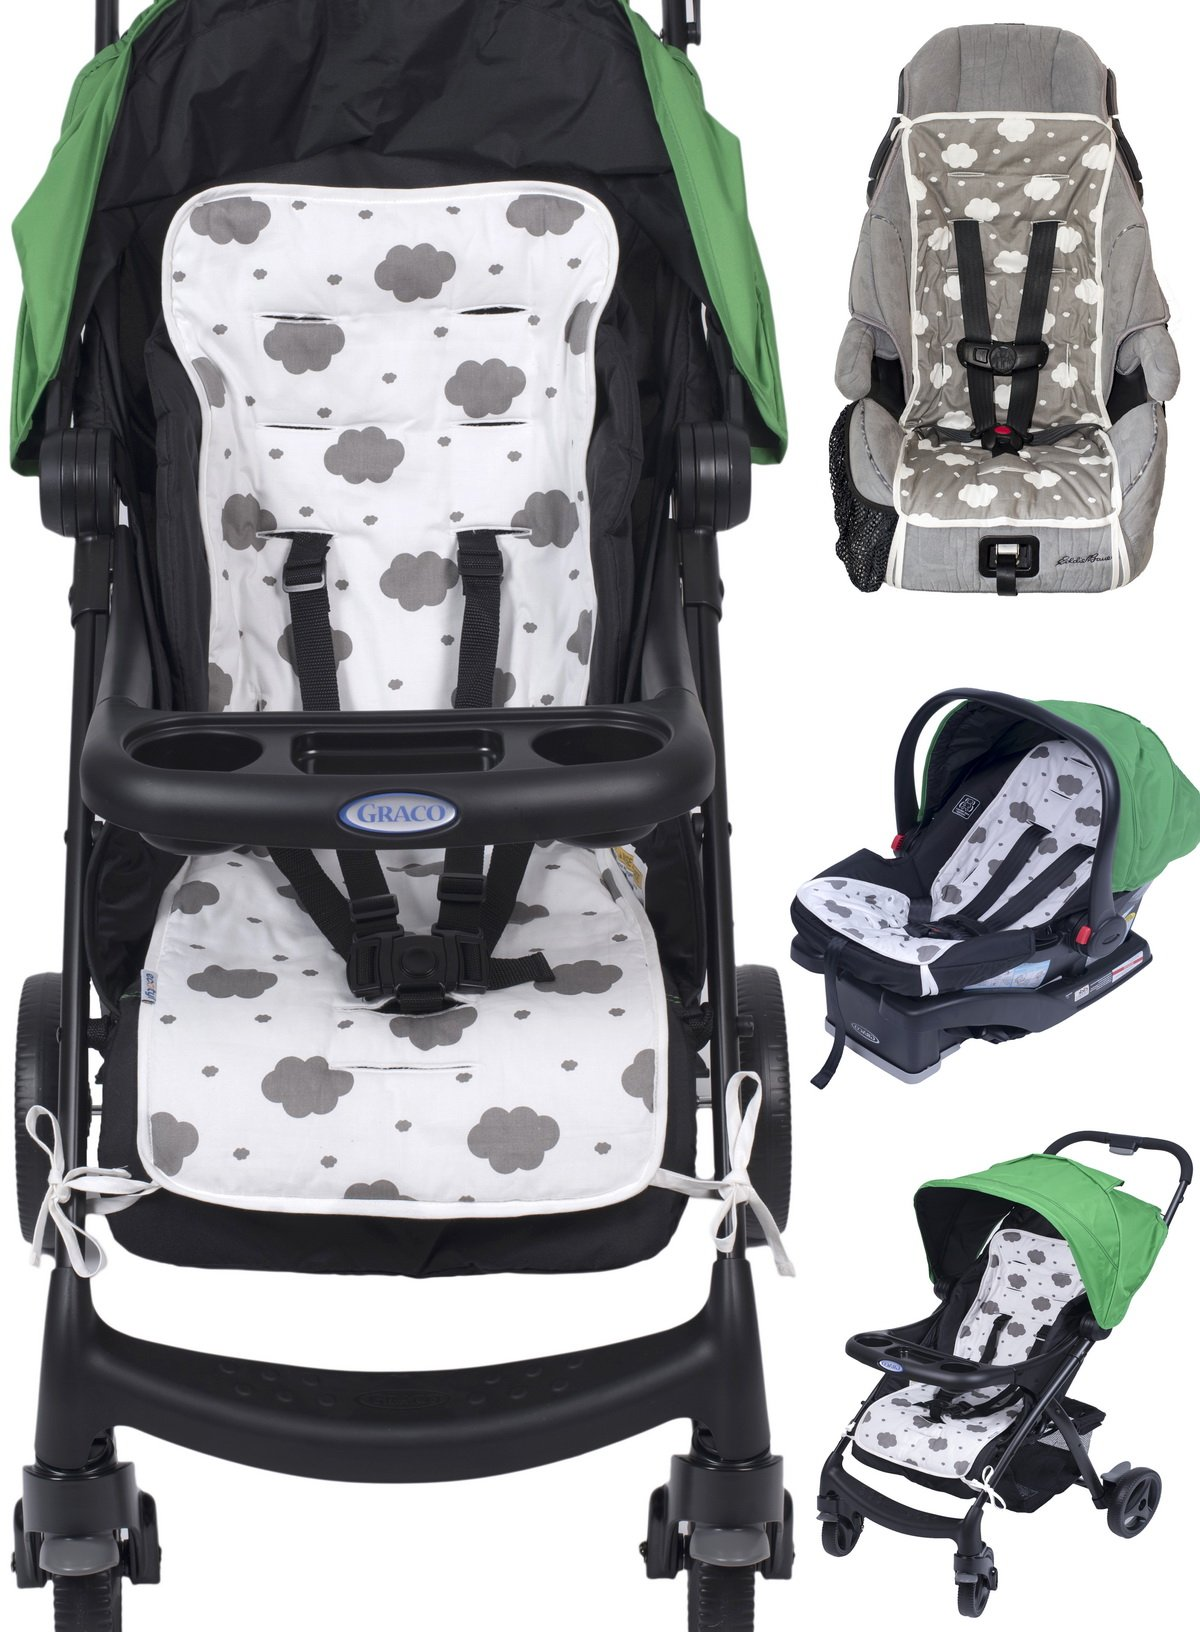 d5365acf484 Get Quotations · Reversible Pure Cotton Universal Baby Seat Liner for  Stroller